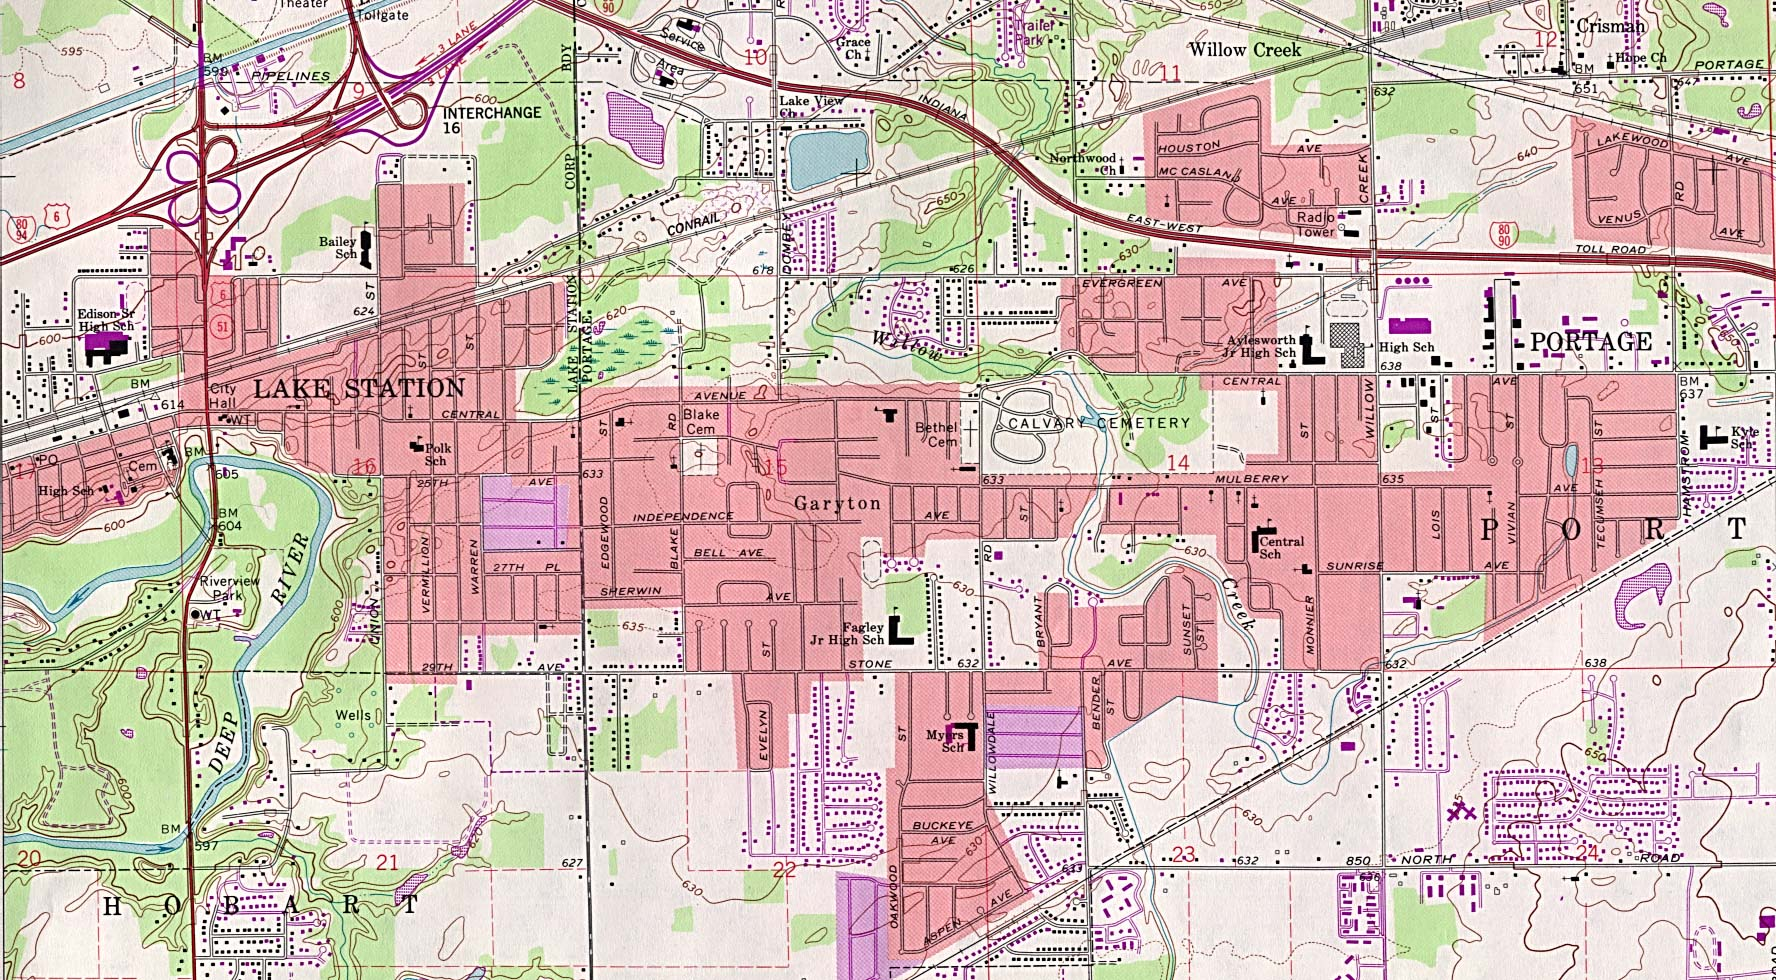 Portage Topographic City Map, Indiana, United States